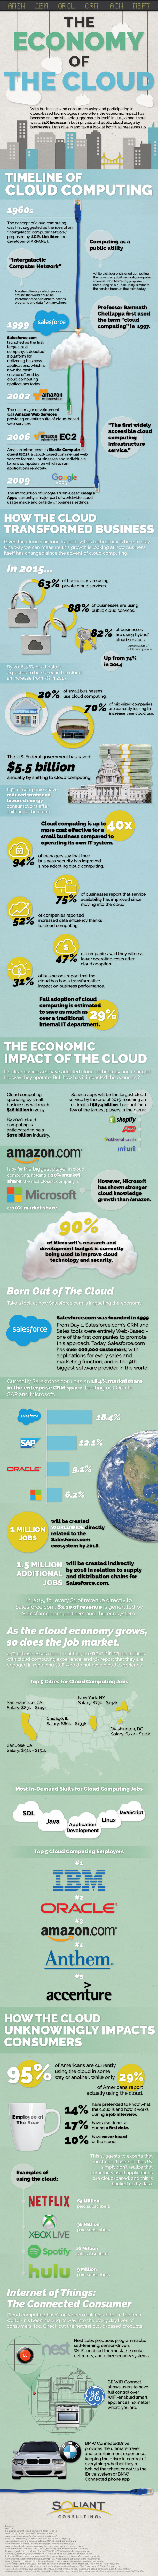 The Economy of the Cloud